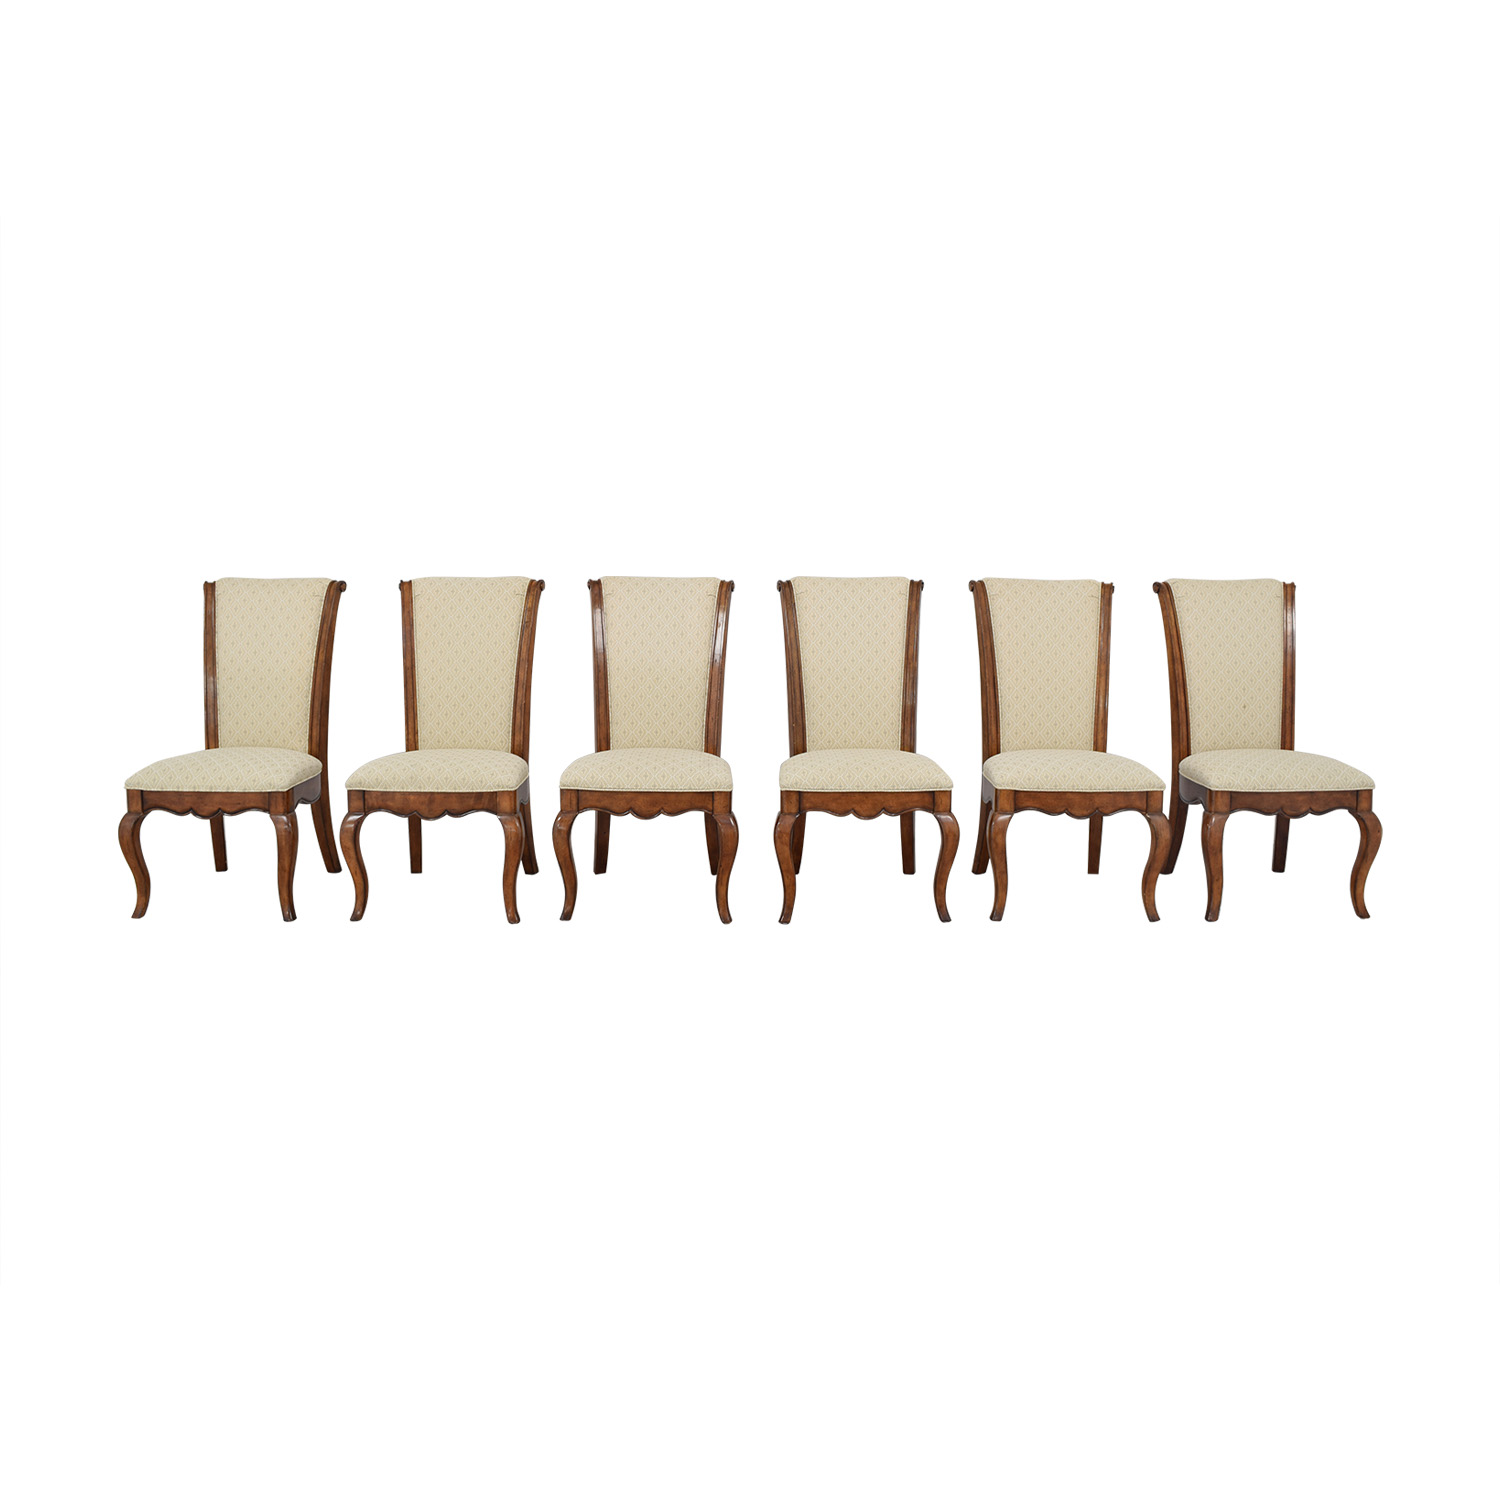 buy Drexel Heritage Extendable Dining Chairs Drexel Heritage Dining Chairs